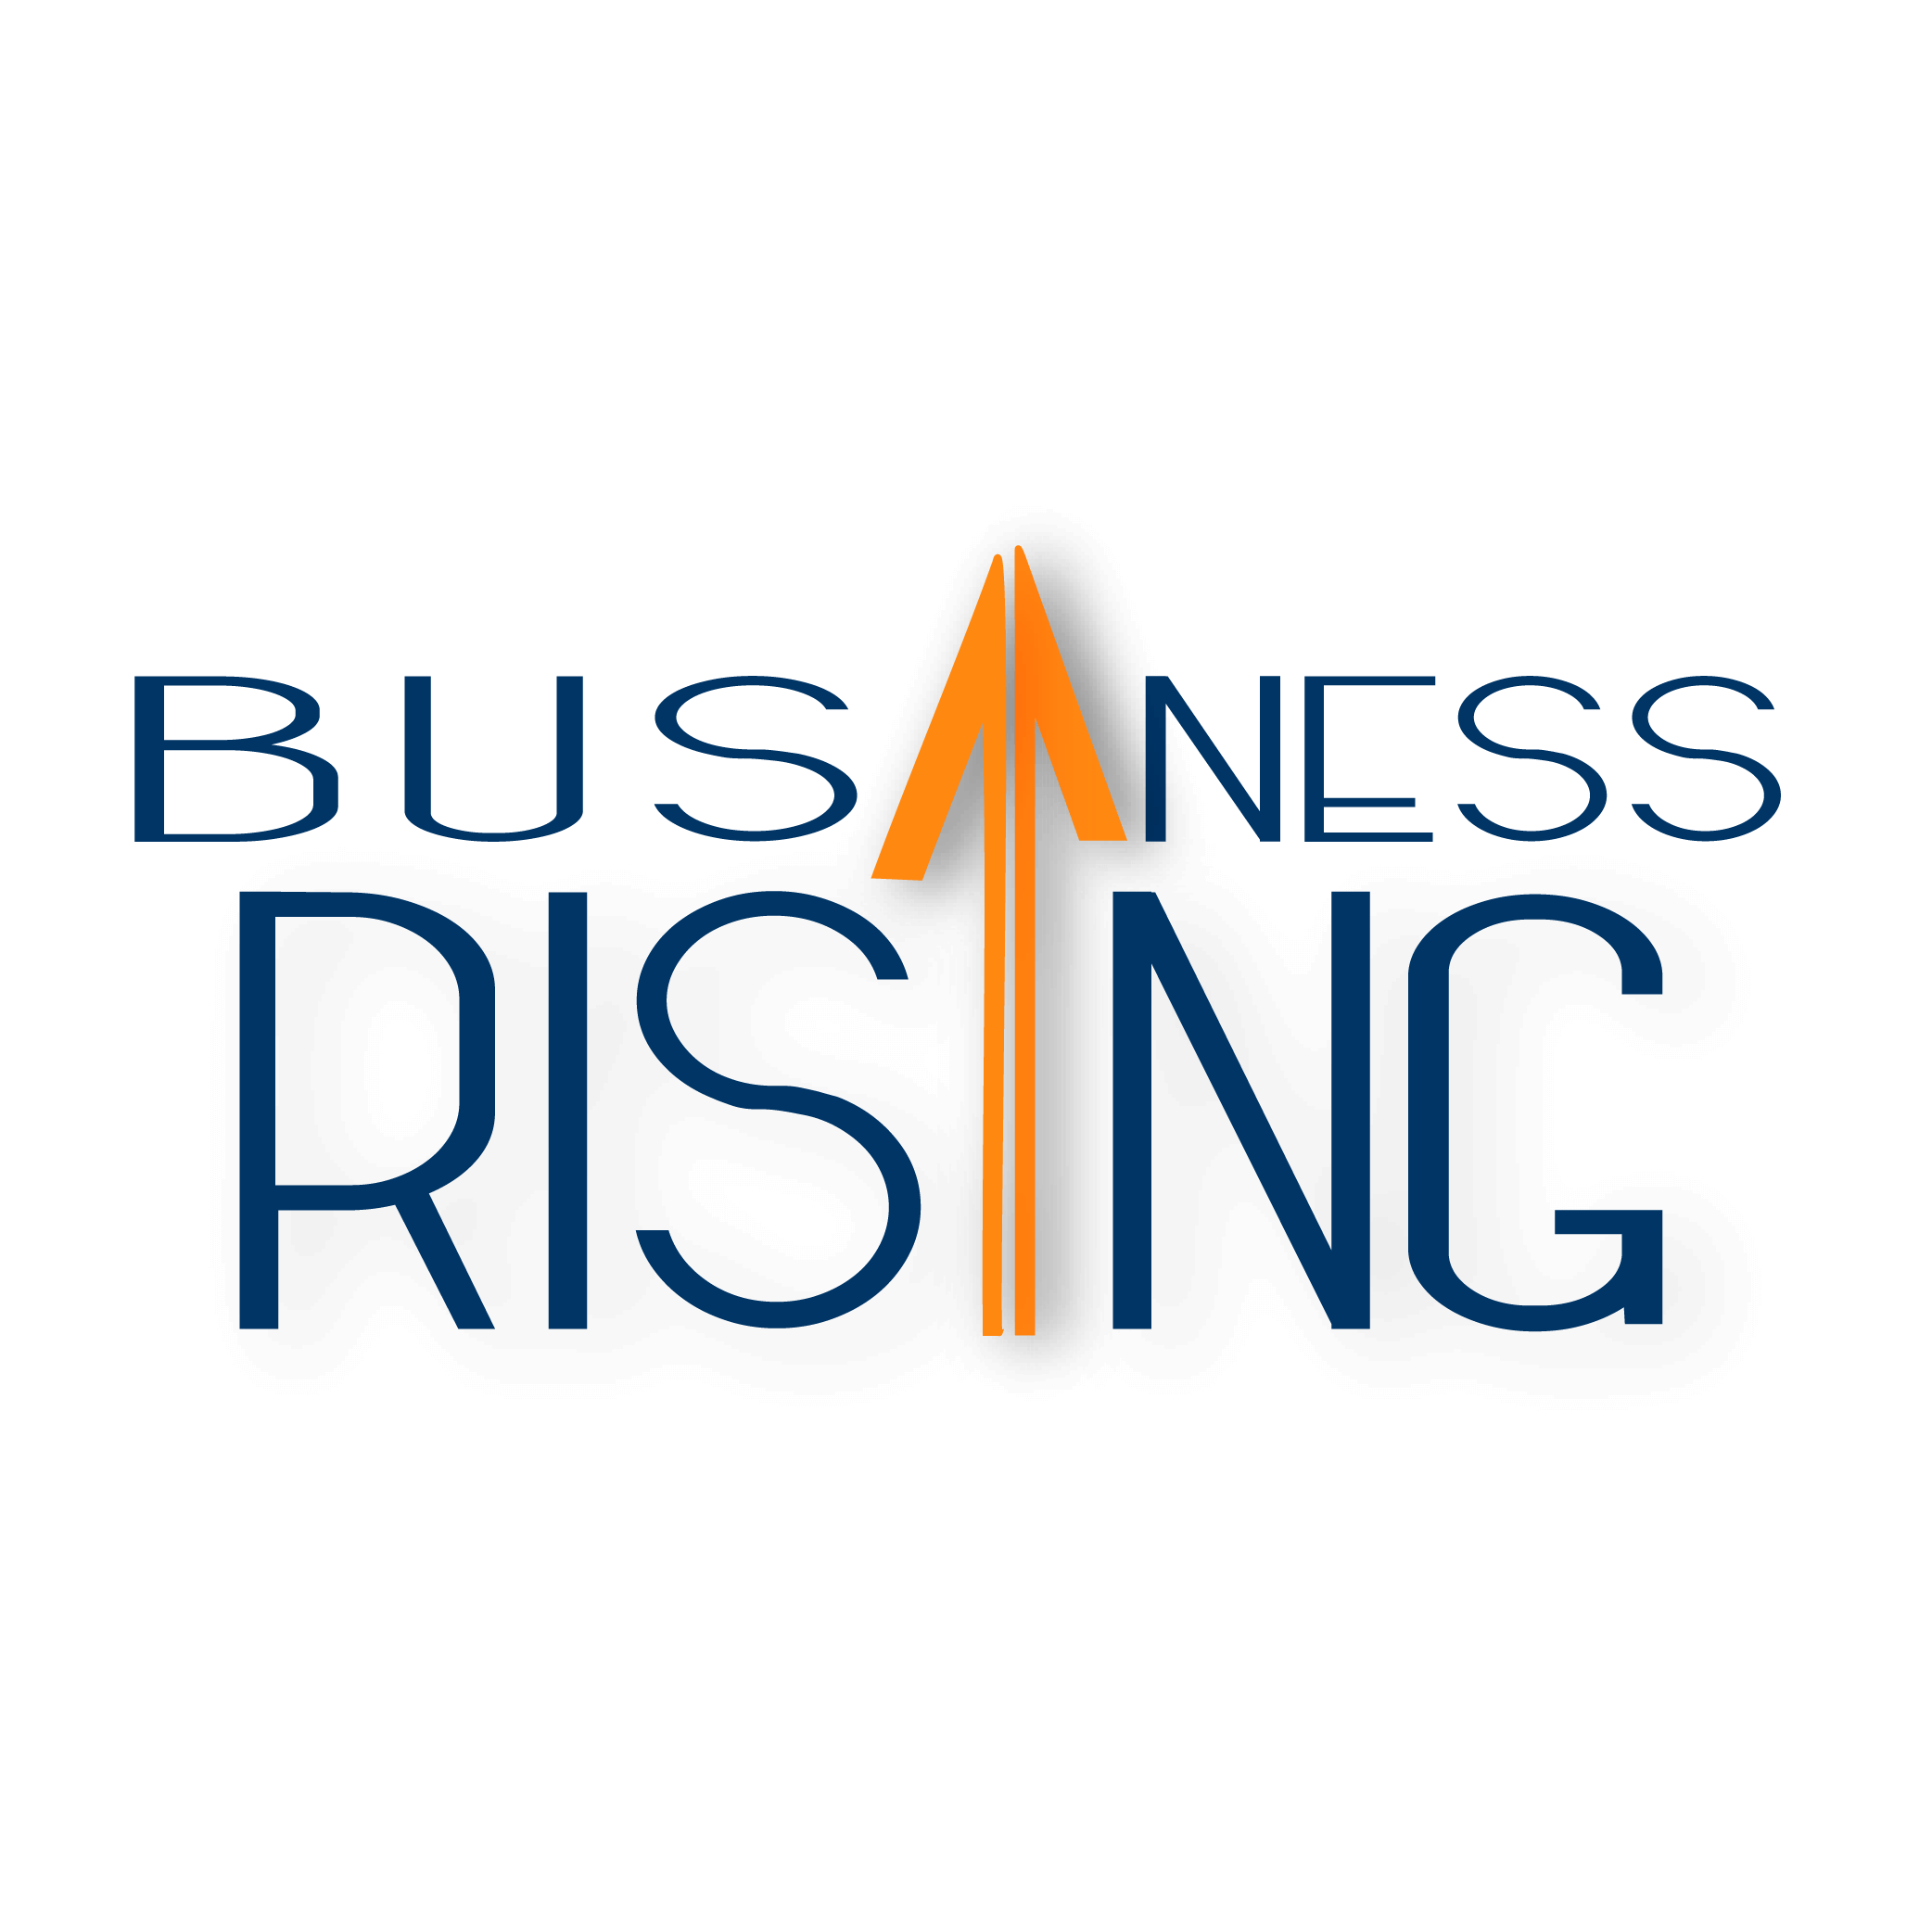 Business Rising